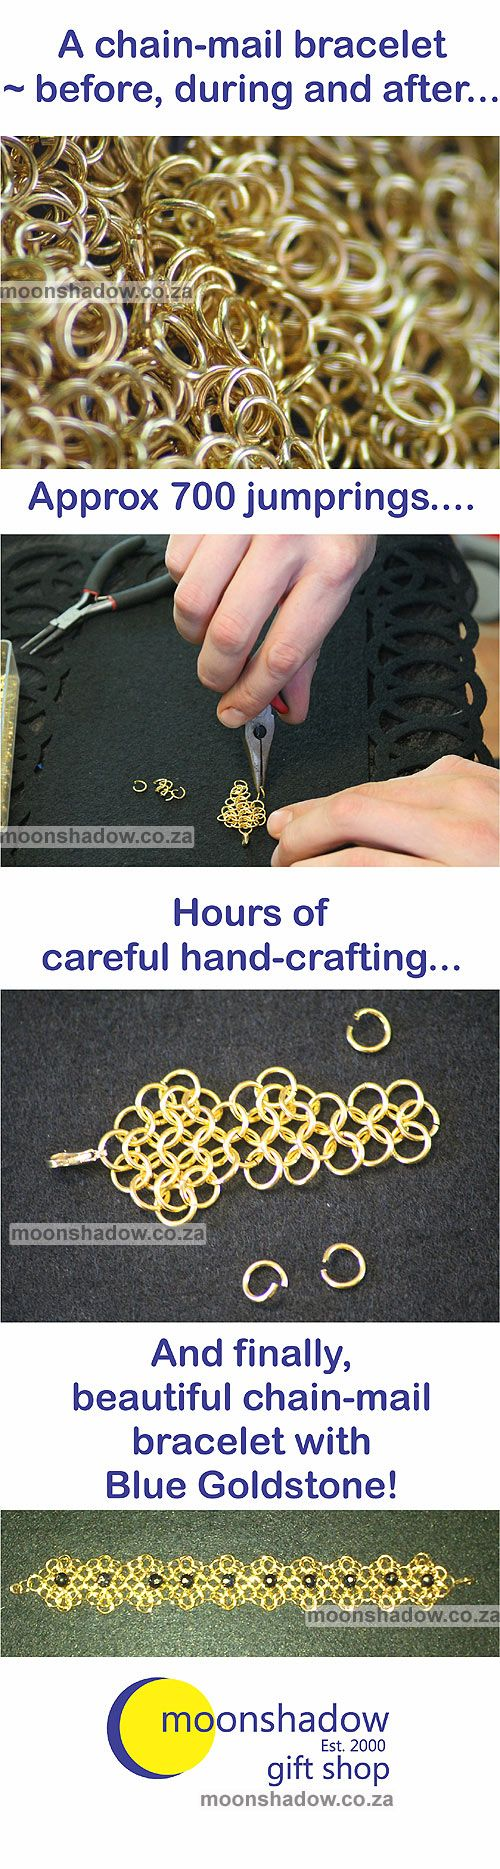 Chain-mail bracelet with blue goldstone. Hours of careful hand-crafting!